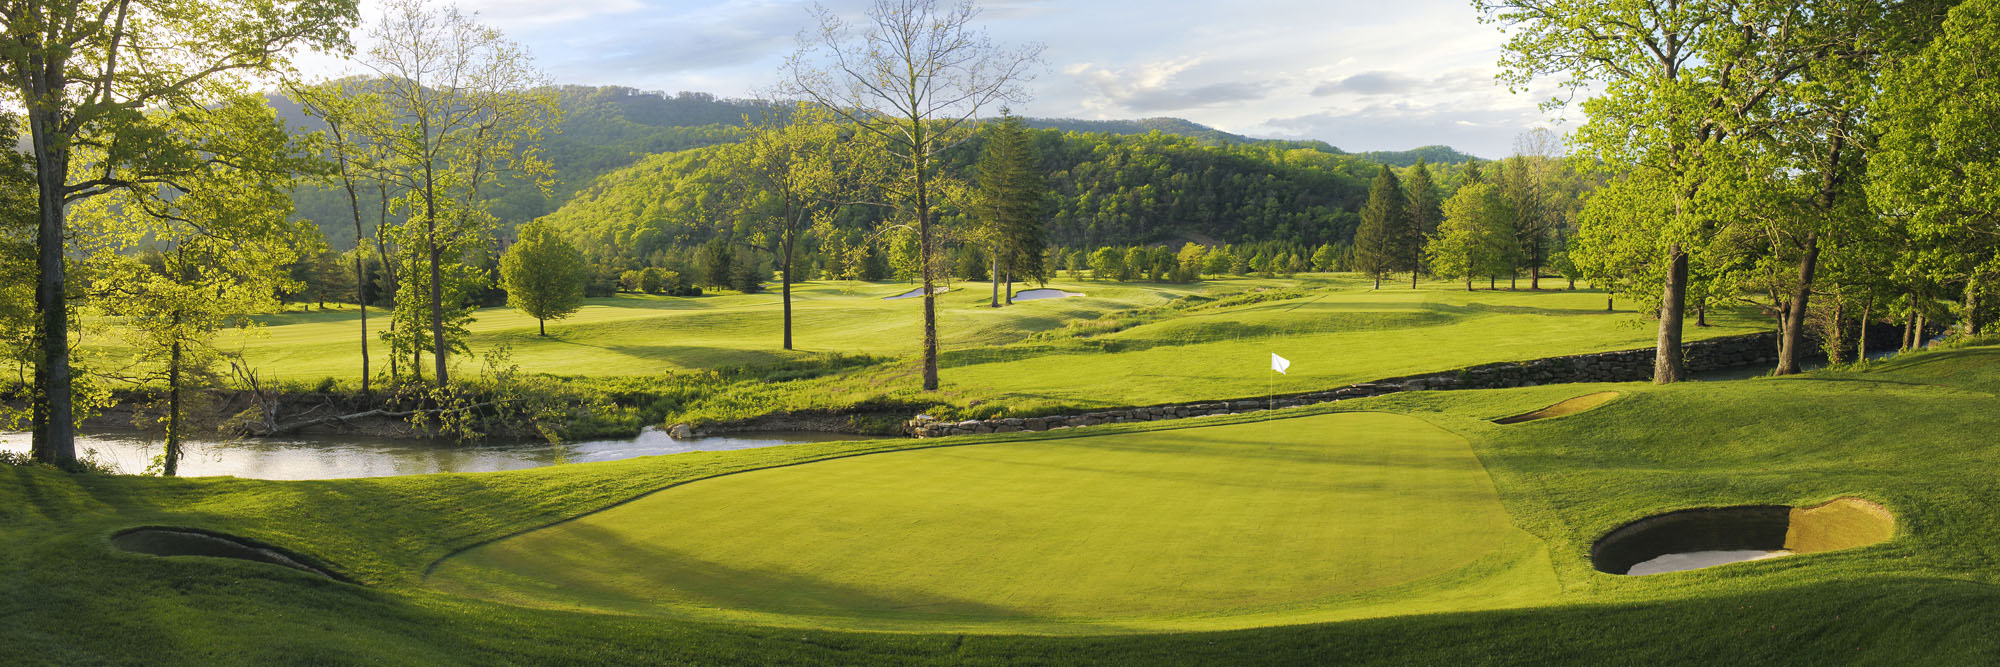 Golf Course Image - The Greenbrier Meadows Course No. 12